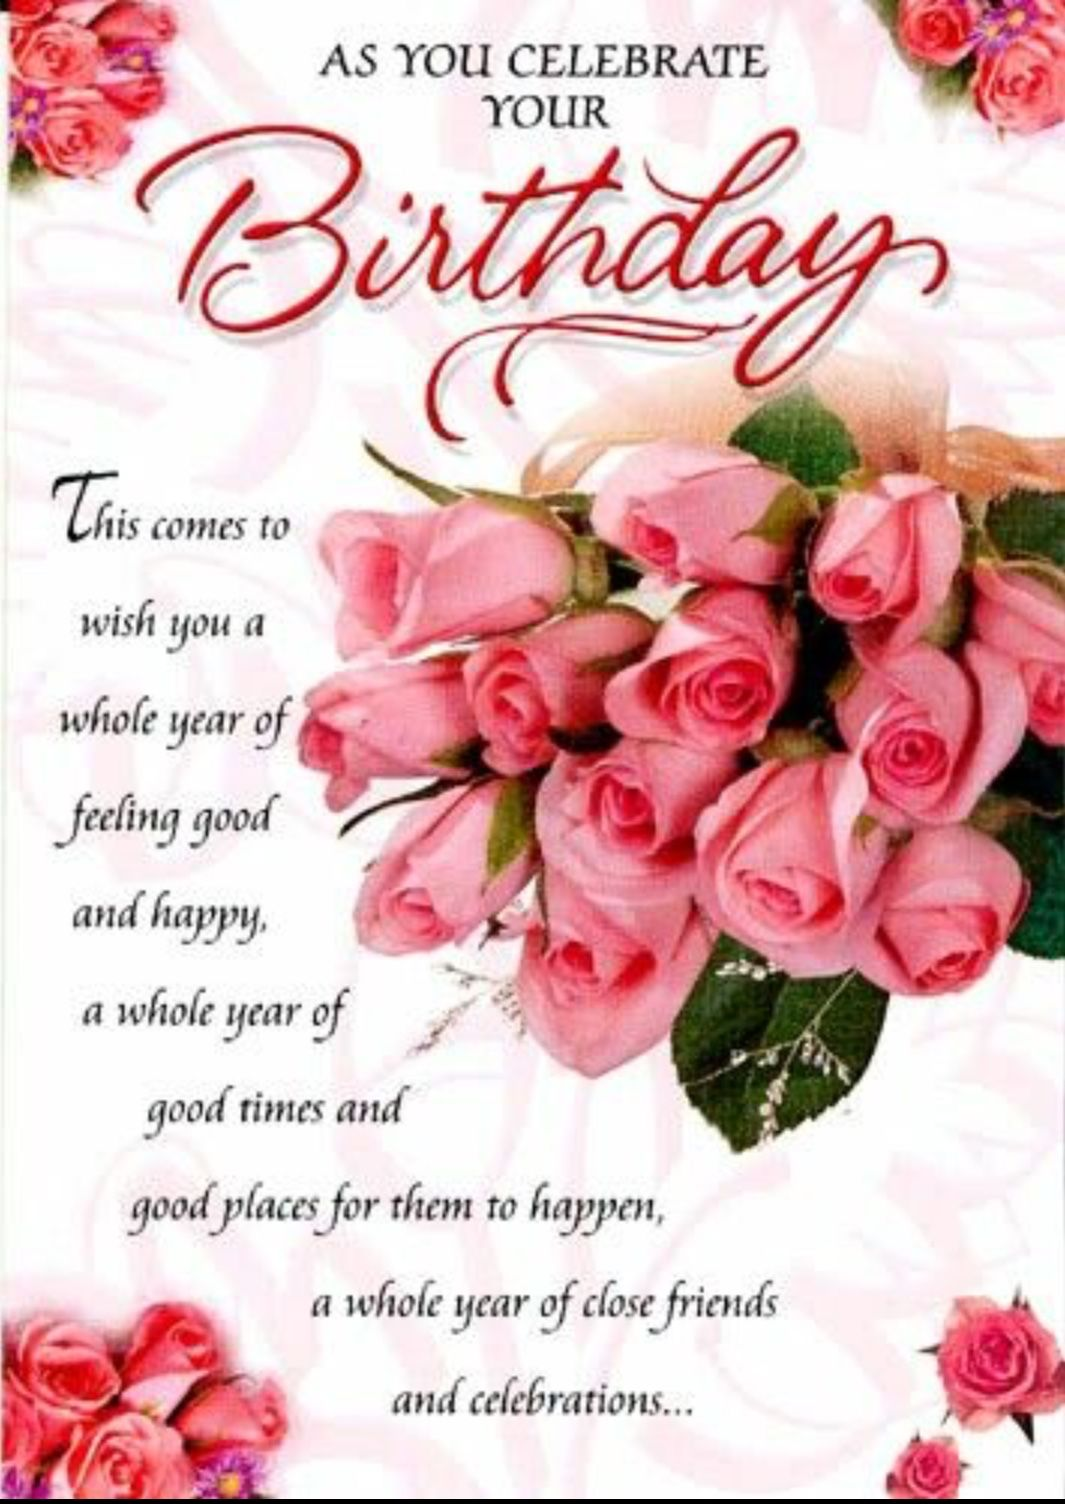 Pin By Patty Raasch On Birthday Pictures Pinterest Birthdays